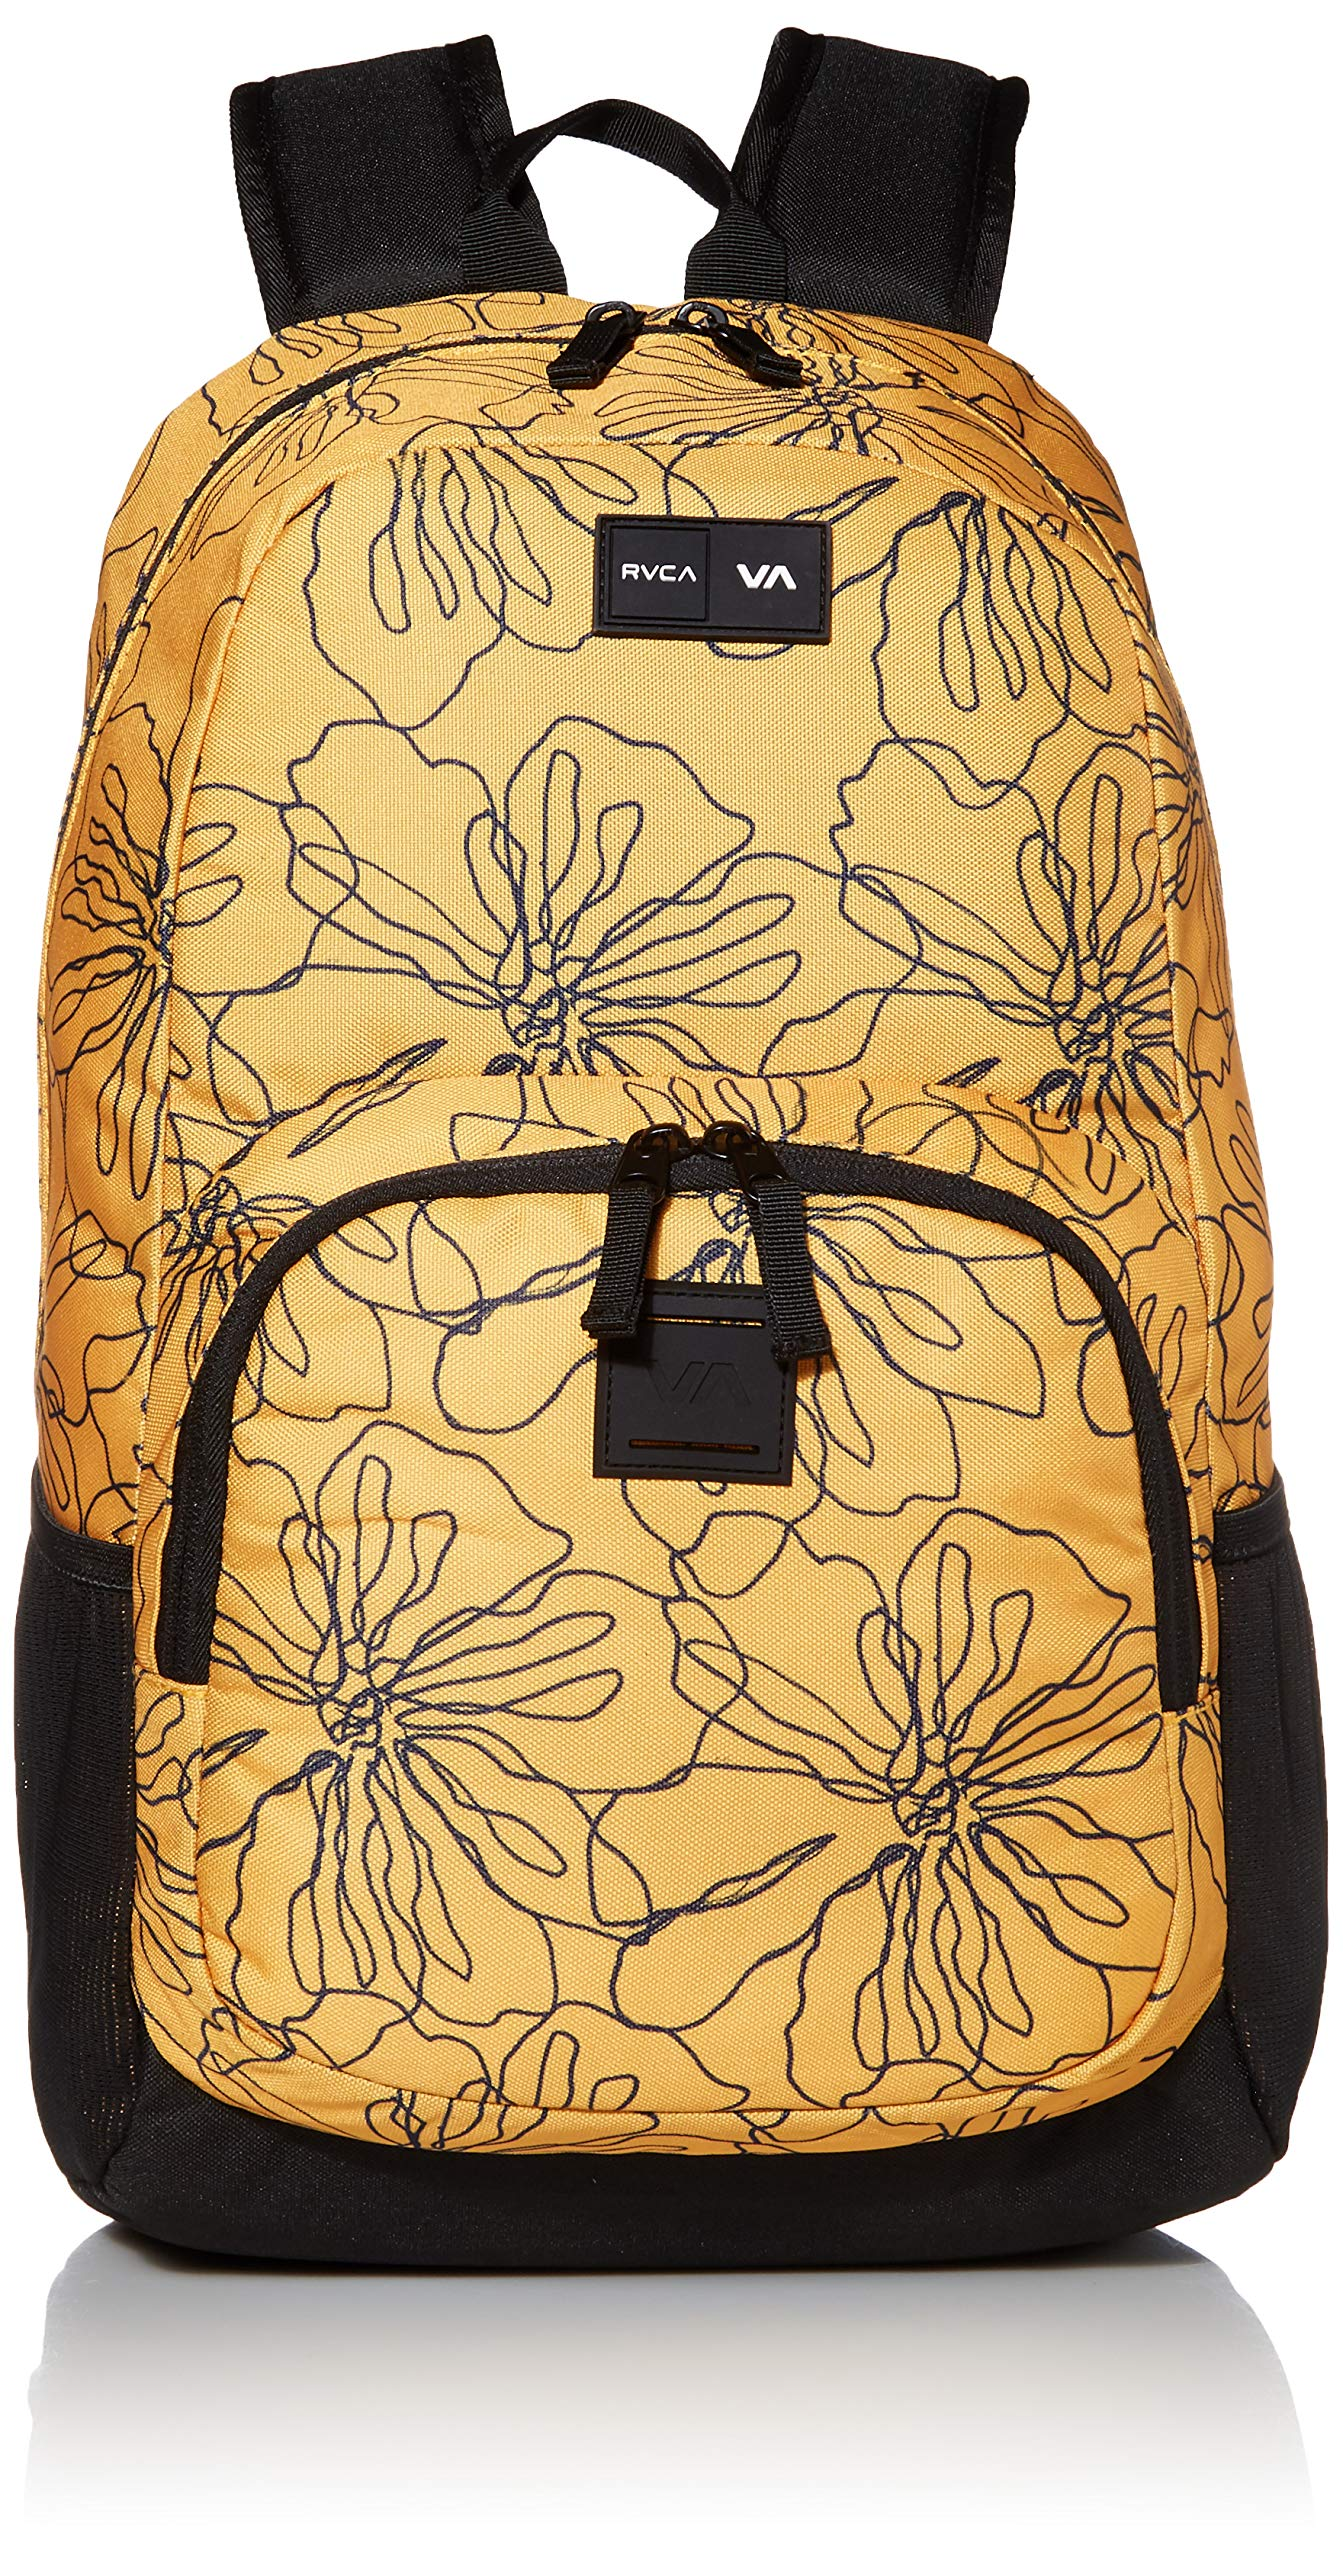 RVCA Men's Estate Backpack II, Yellow, ONE SIZE by RVCA